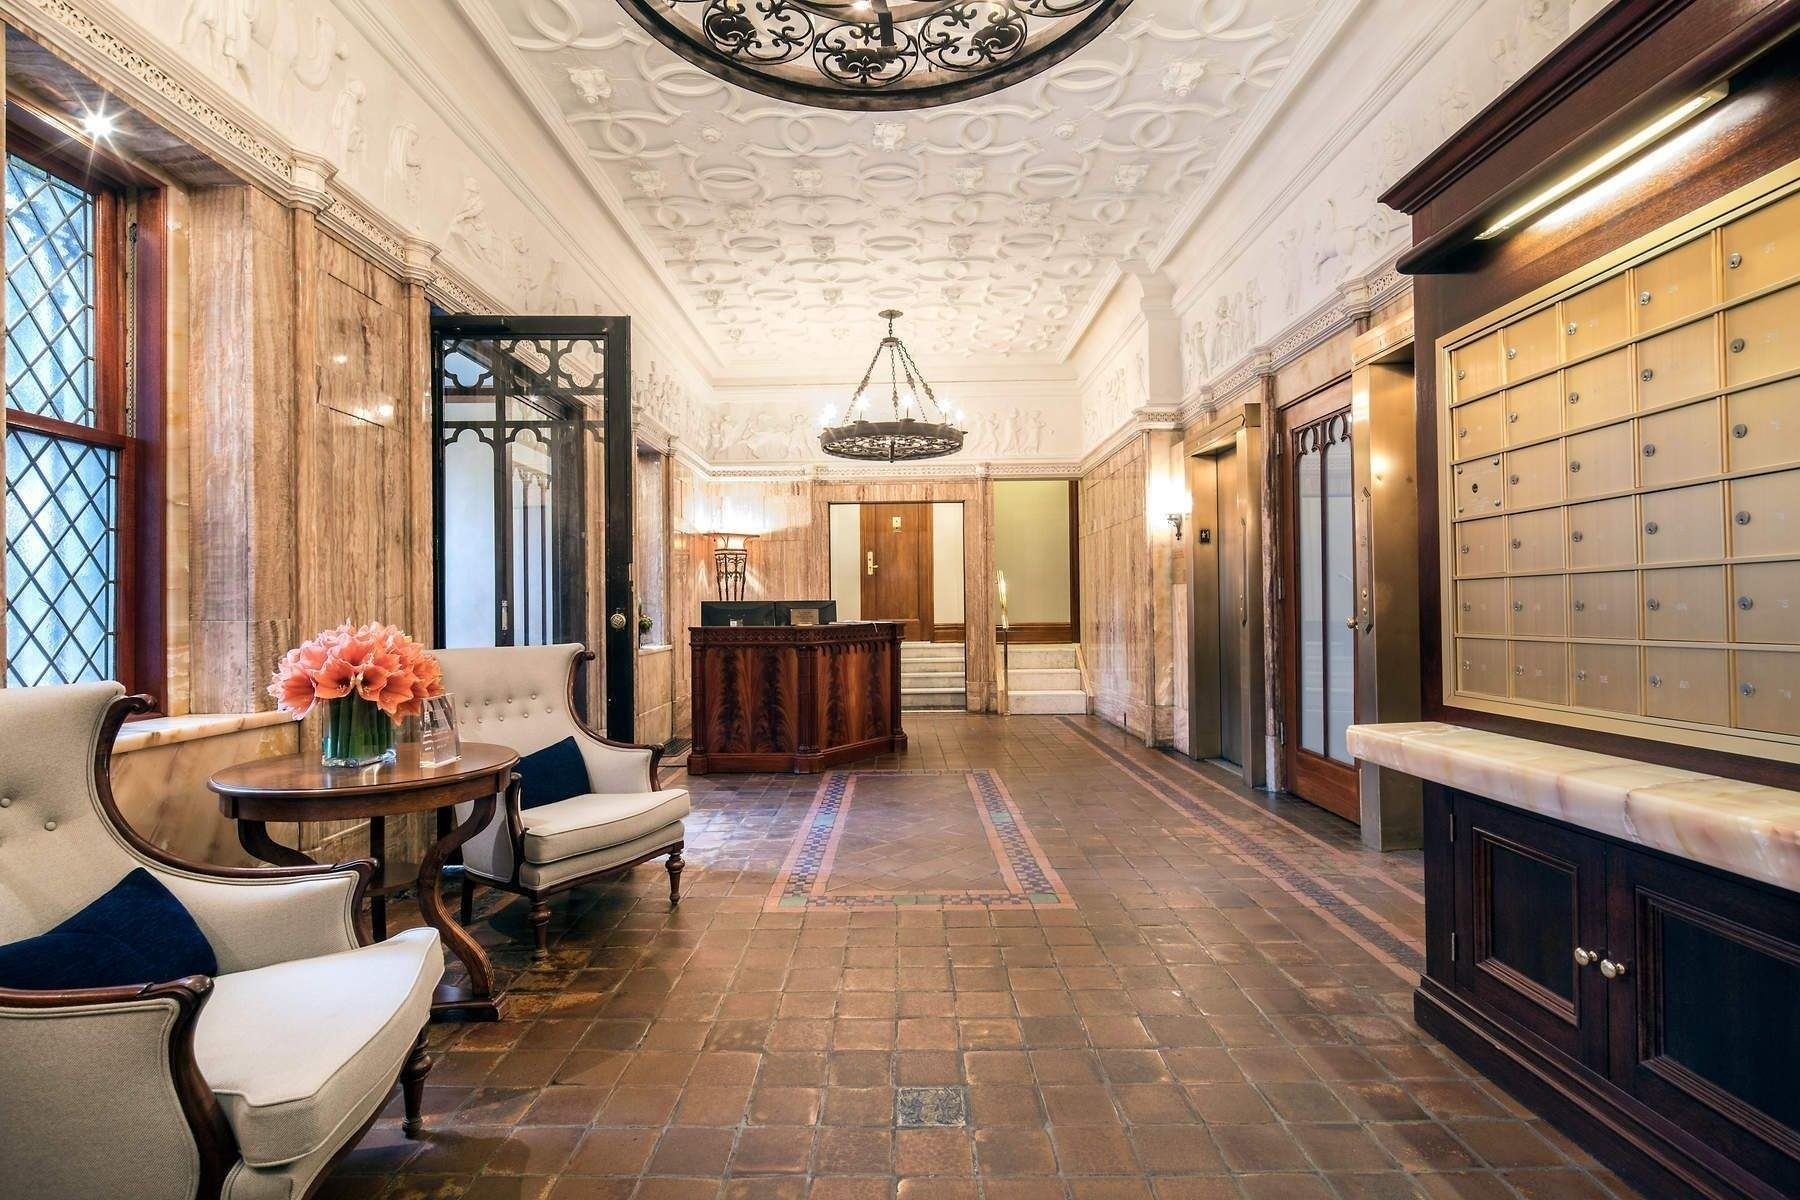 12. Condominiums for Sale at 36 Gramercy Park East, 7W Gramercy Park, New York, NY 10003